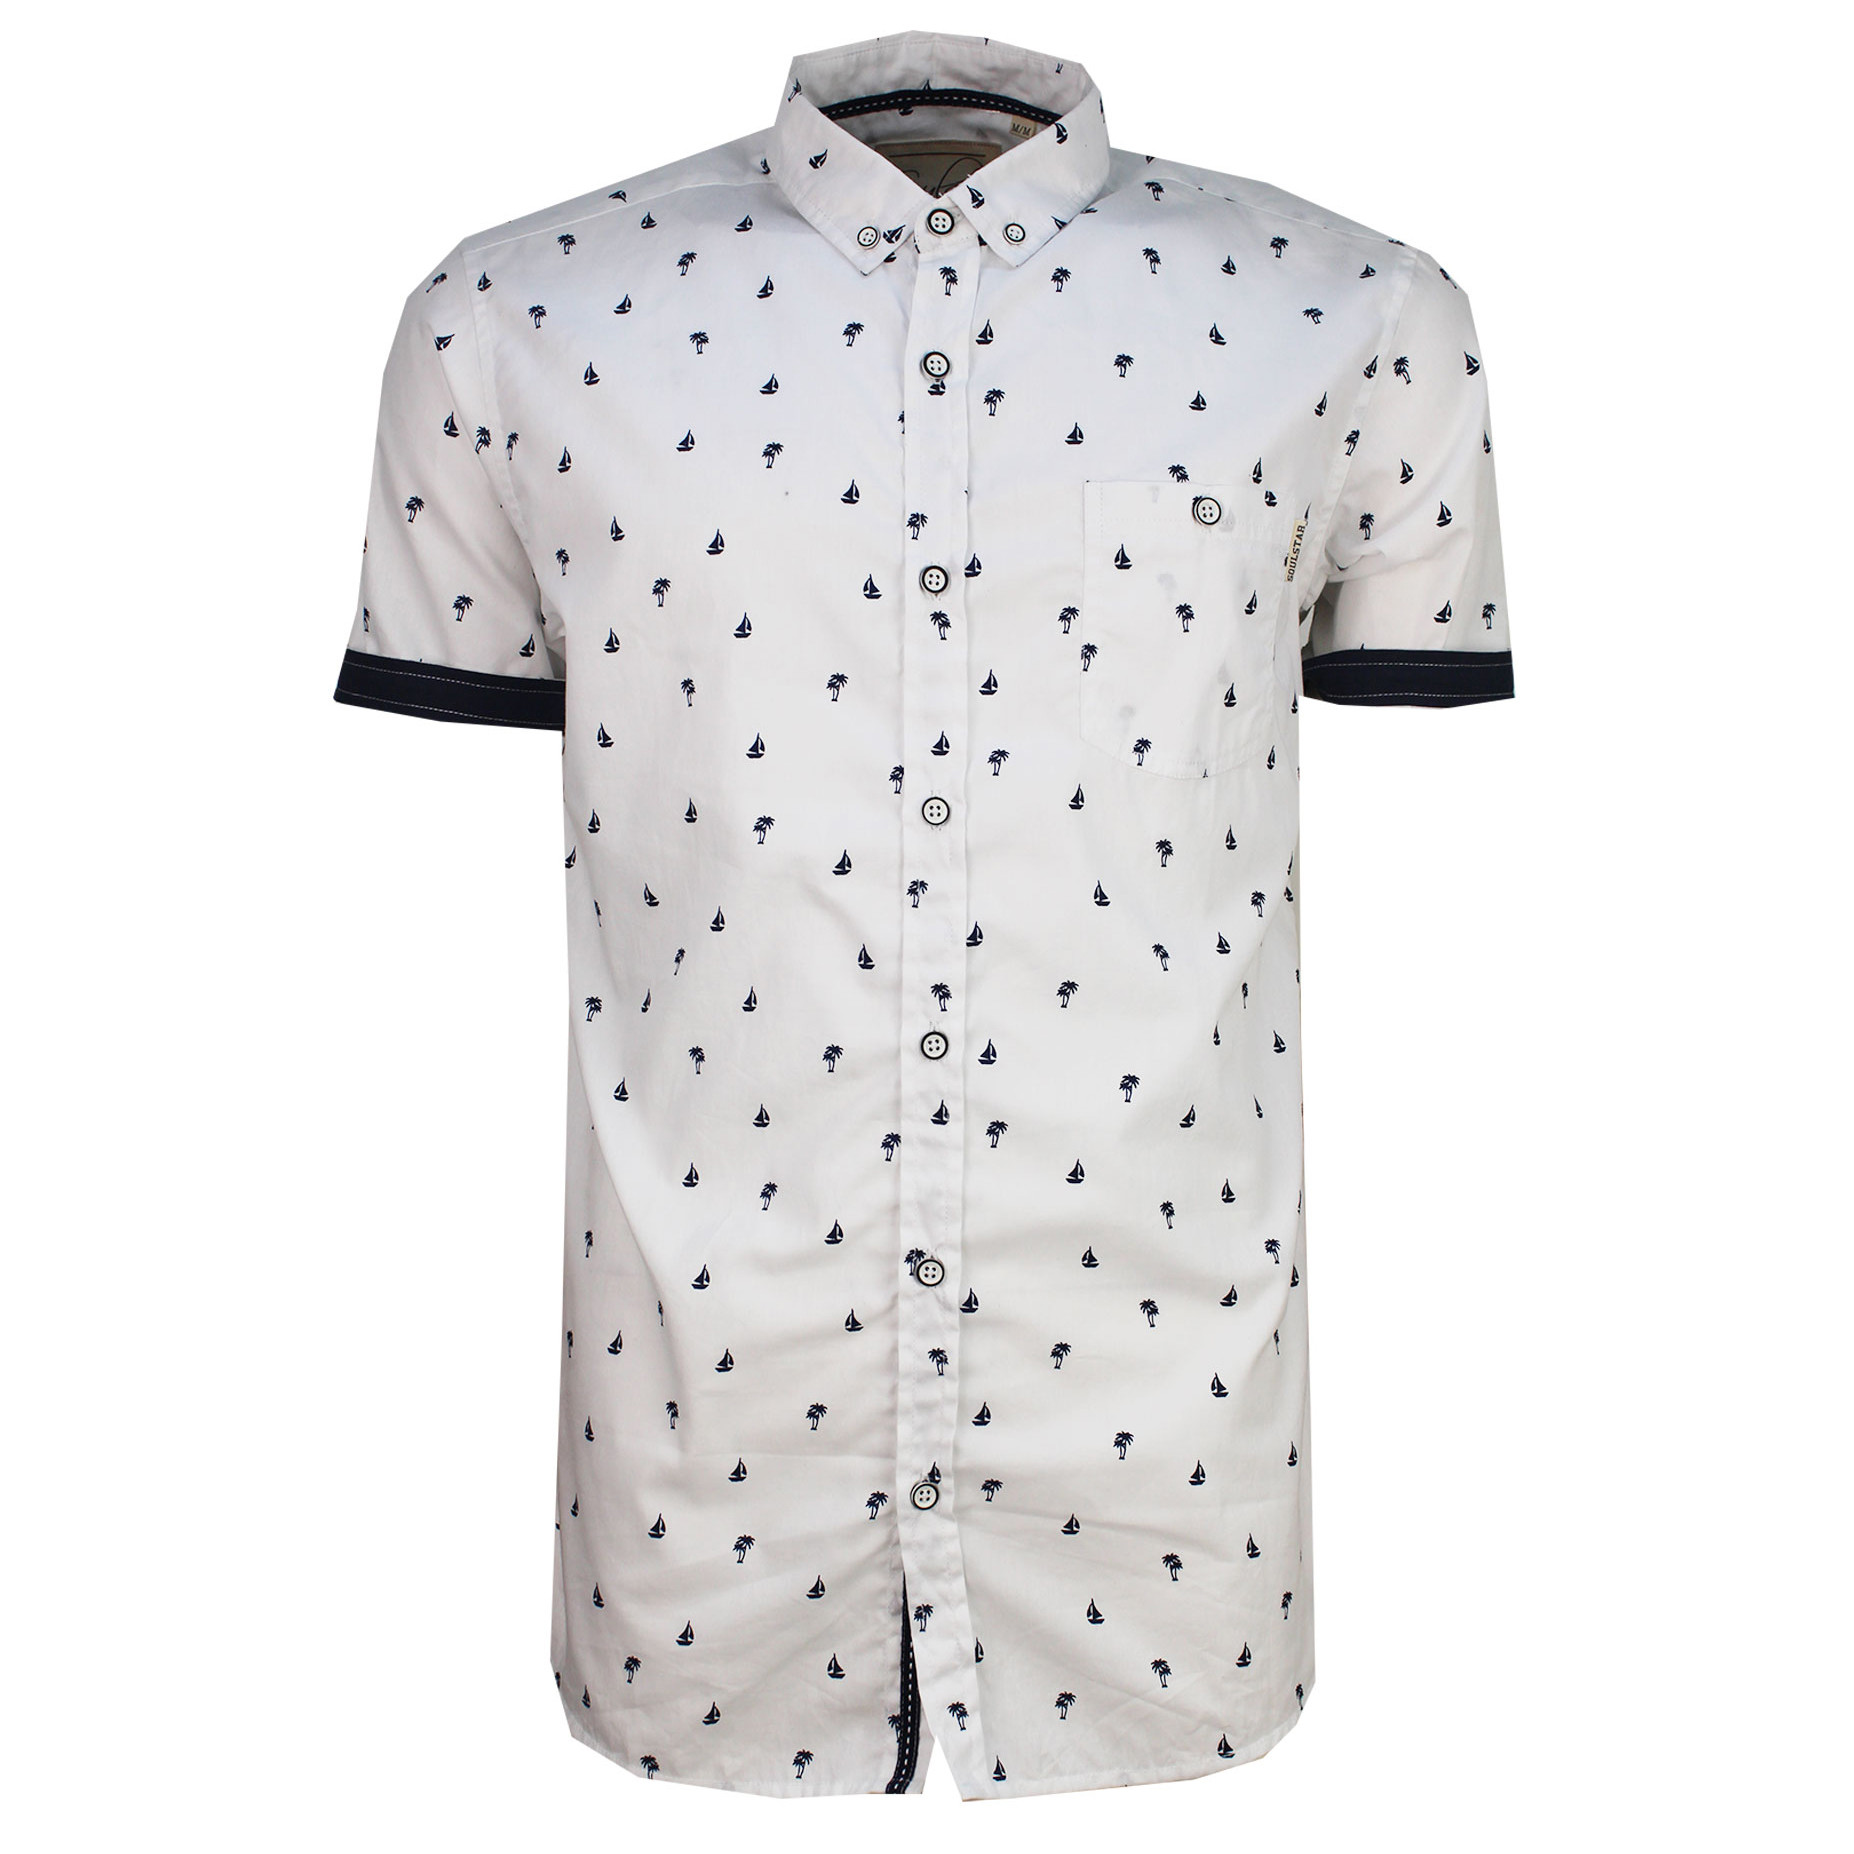 Soulstar Casual Yachting Print Shirt Short Sleeve White Jean Scene Pattern Black Double Tap To Zoom